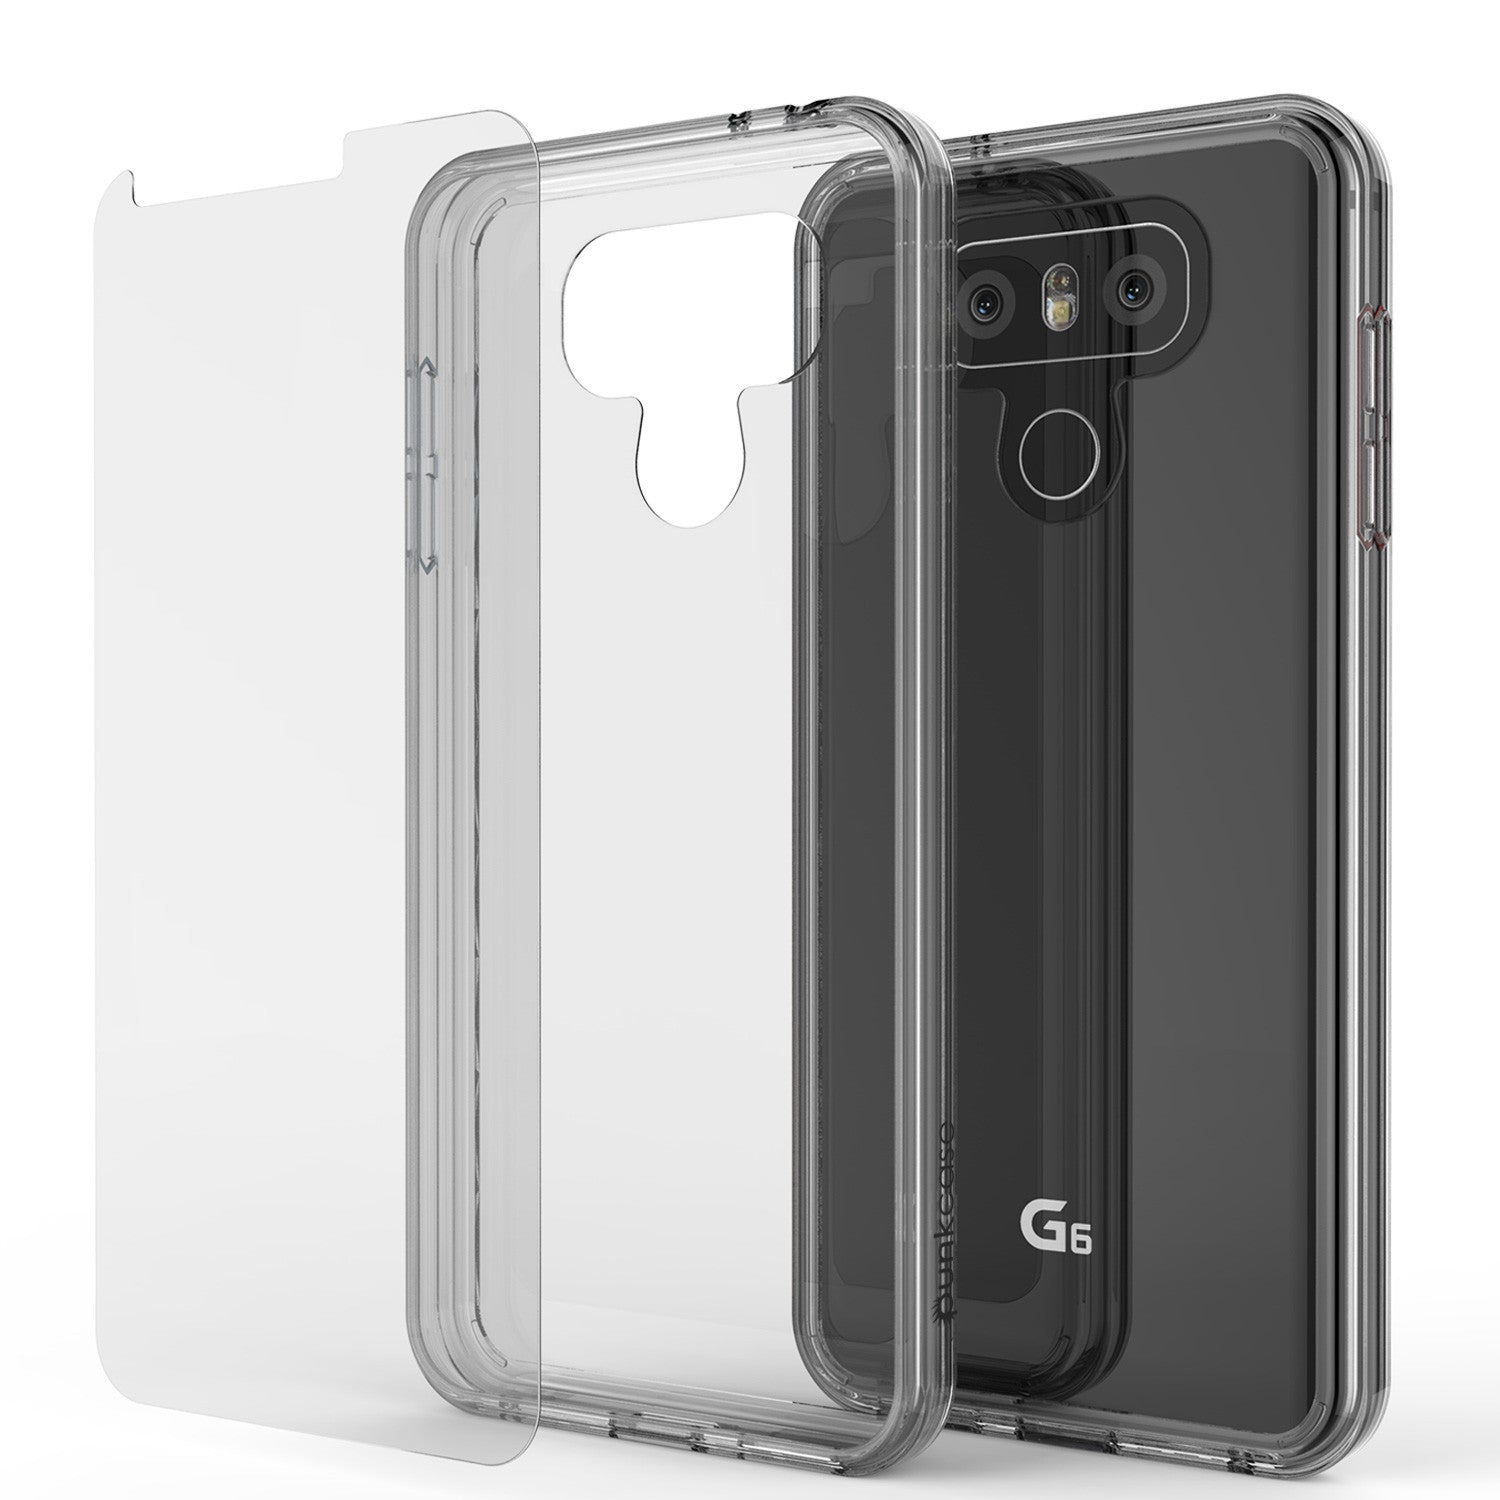 LG G6 Case Punkcase® LUCID 2.0 Clear Series w/ PUNK SHIELD Screen Protector | Ultra Fit